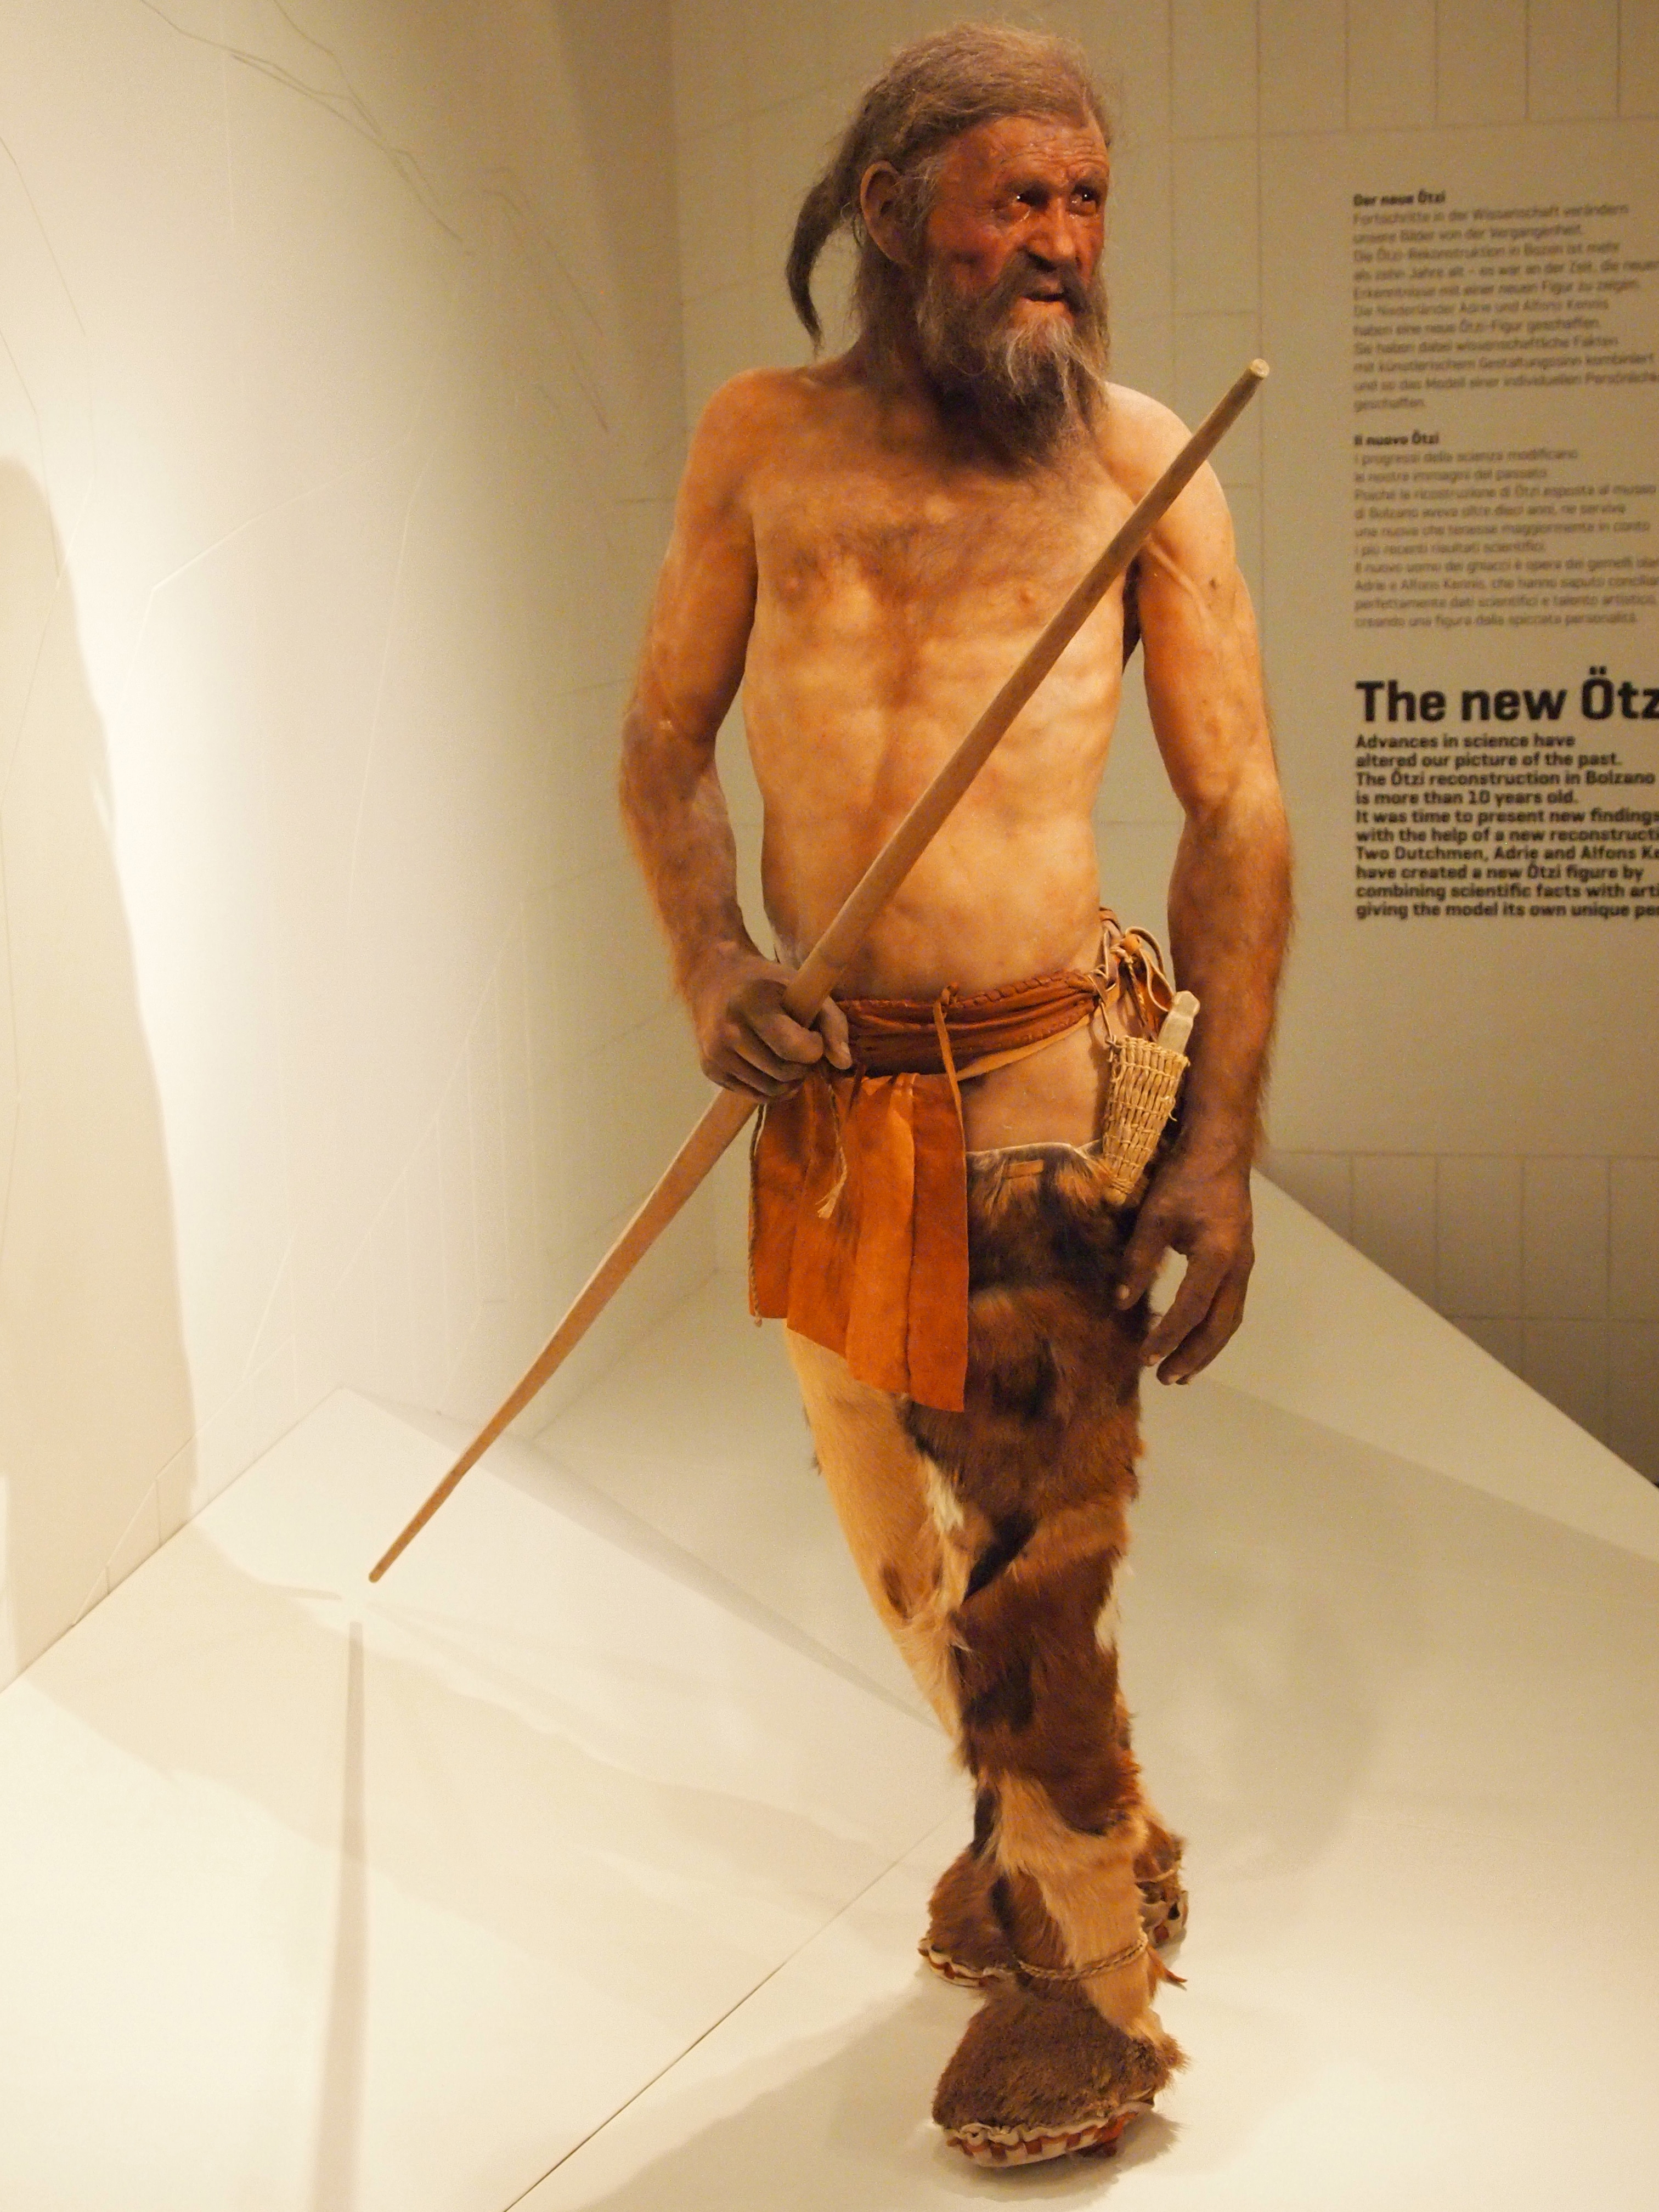 Otzi the Iceman, a 5,300 Year Old European Mummy Reveals ... |Otzi The Iceman